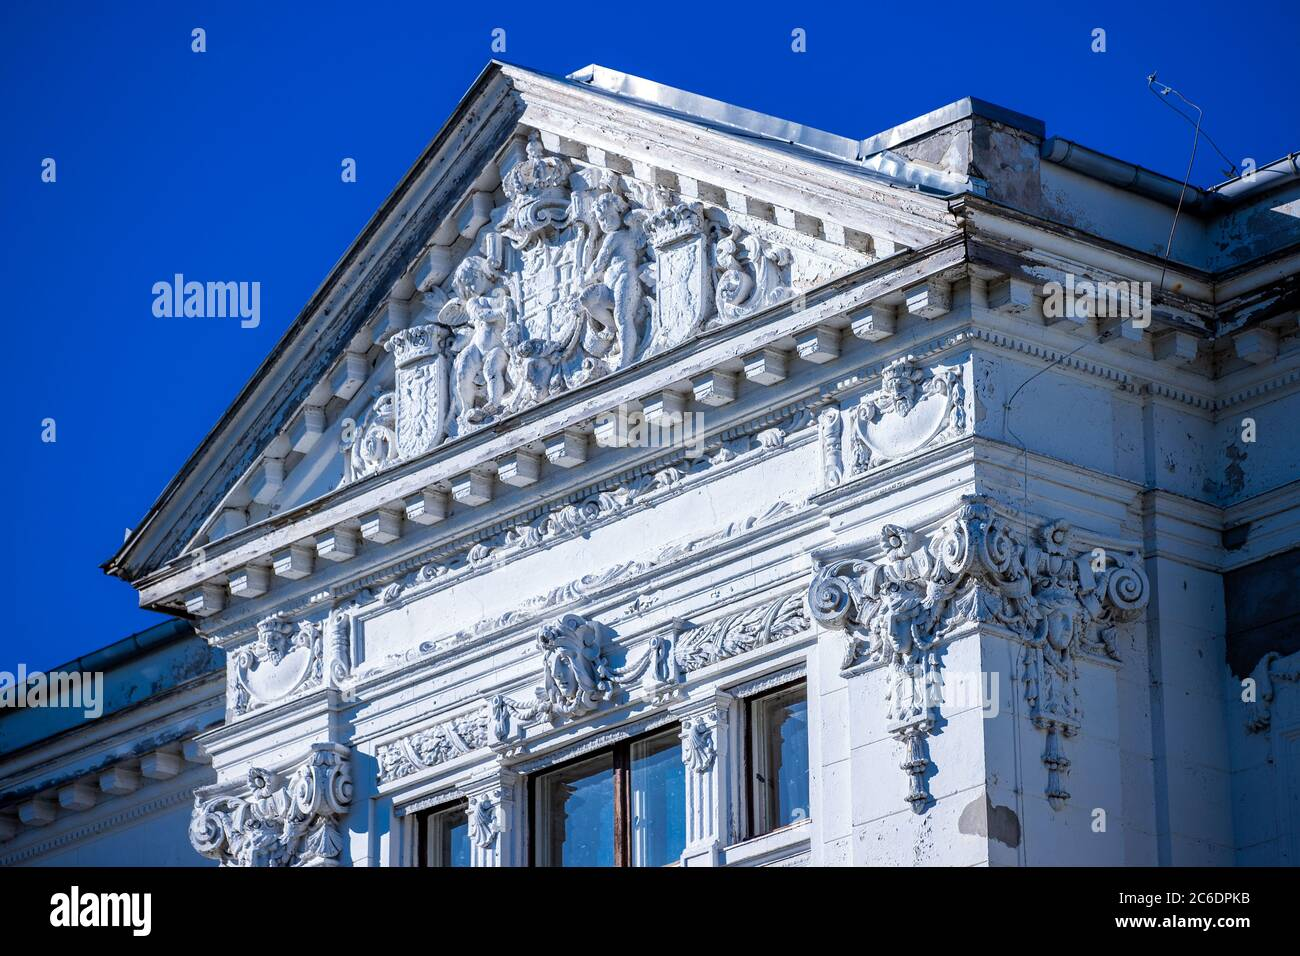 Neustrelitz, Germany. 23rd June, 2020. The former building of the Mecklenburg-Strelitzsche Hypothekenbank in the residence city. Credit: Jens Büttner/dpa-Zentralbild/ZB/dpa/Alamy Live News Stock Photo